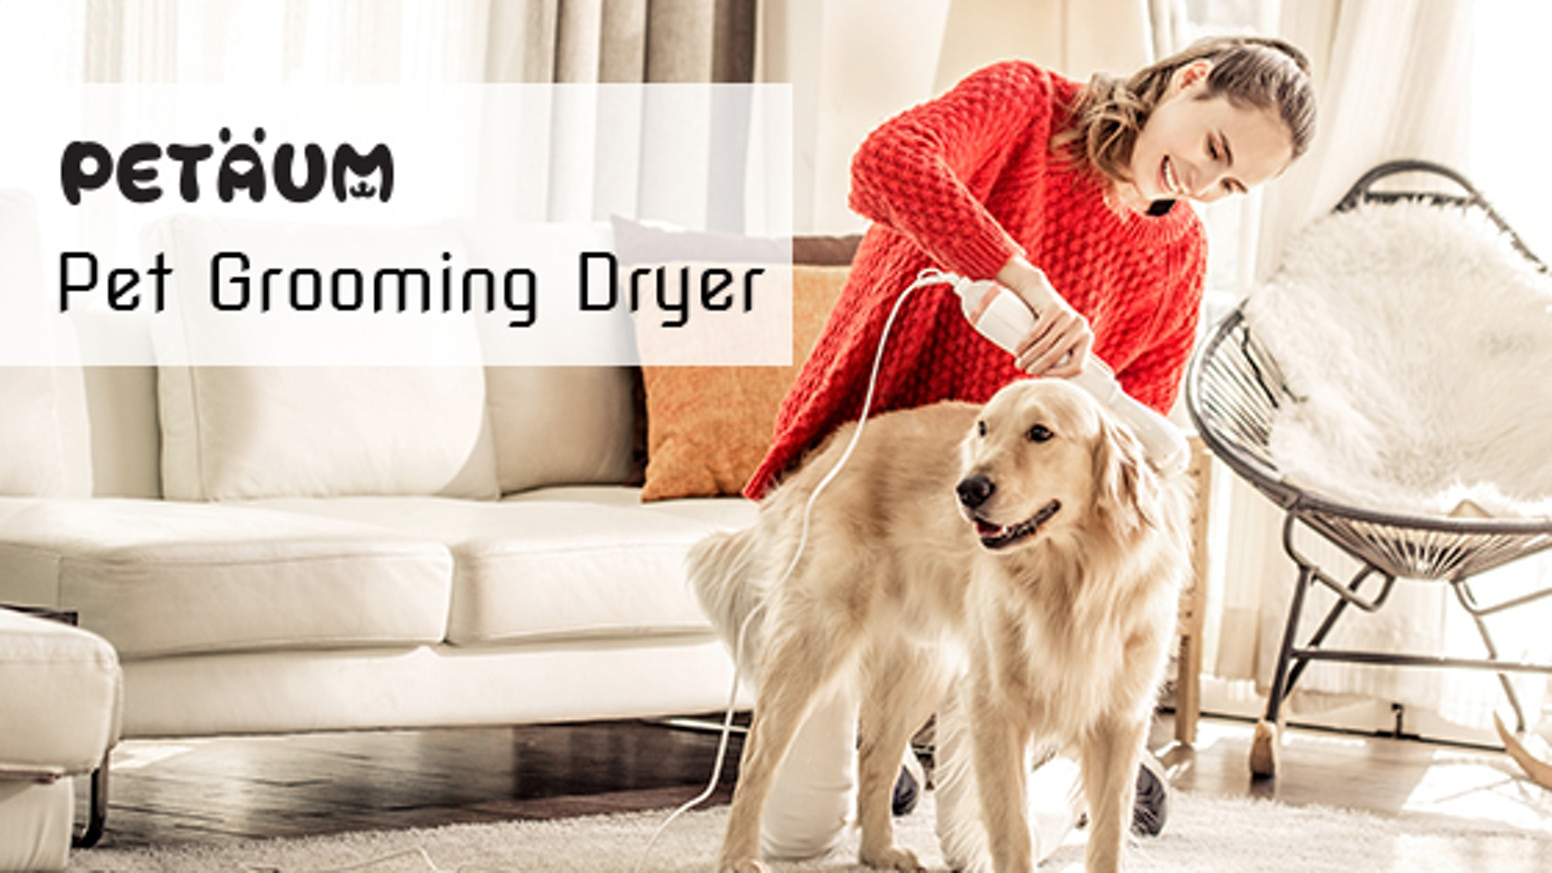 Pet Grooming Dryer Dryer Brush For Your Pet And You By Petaum